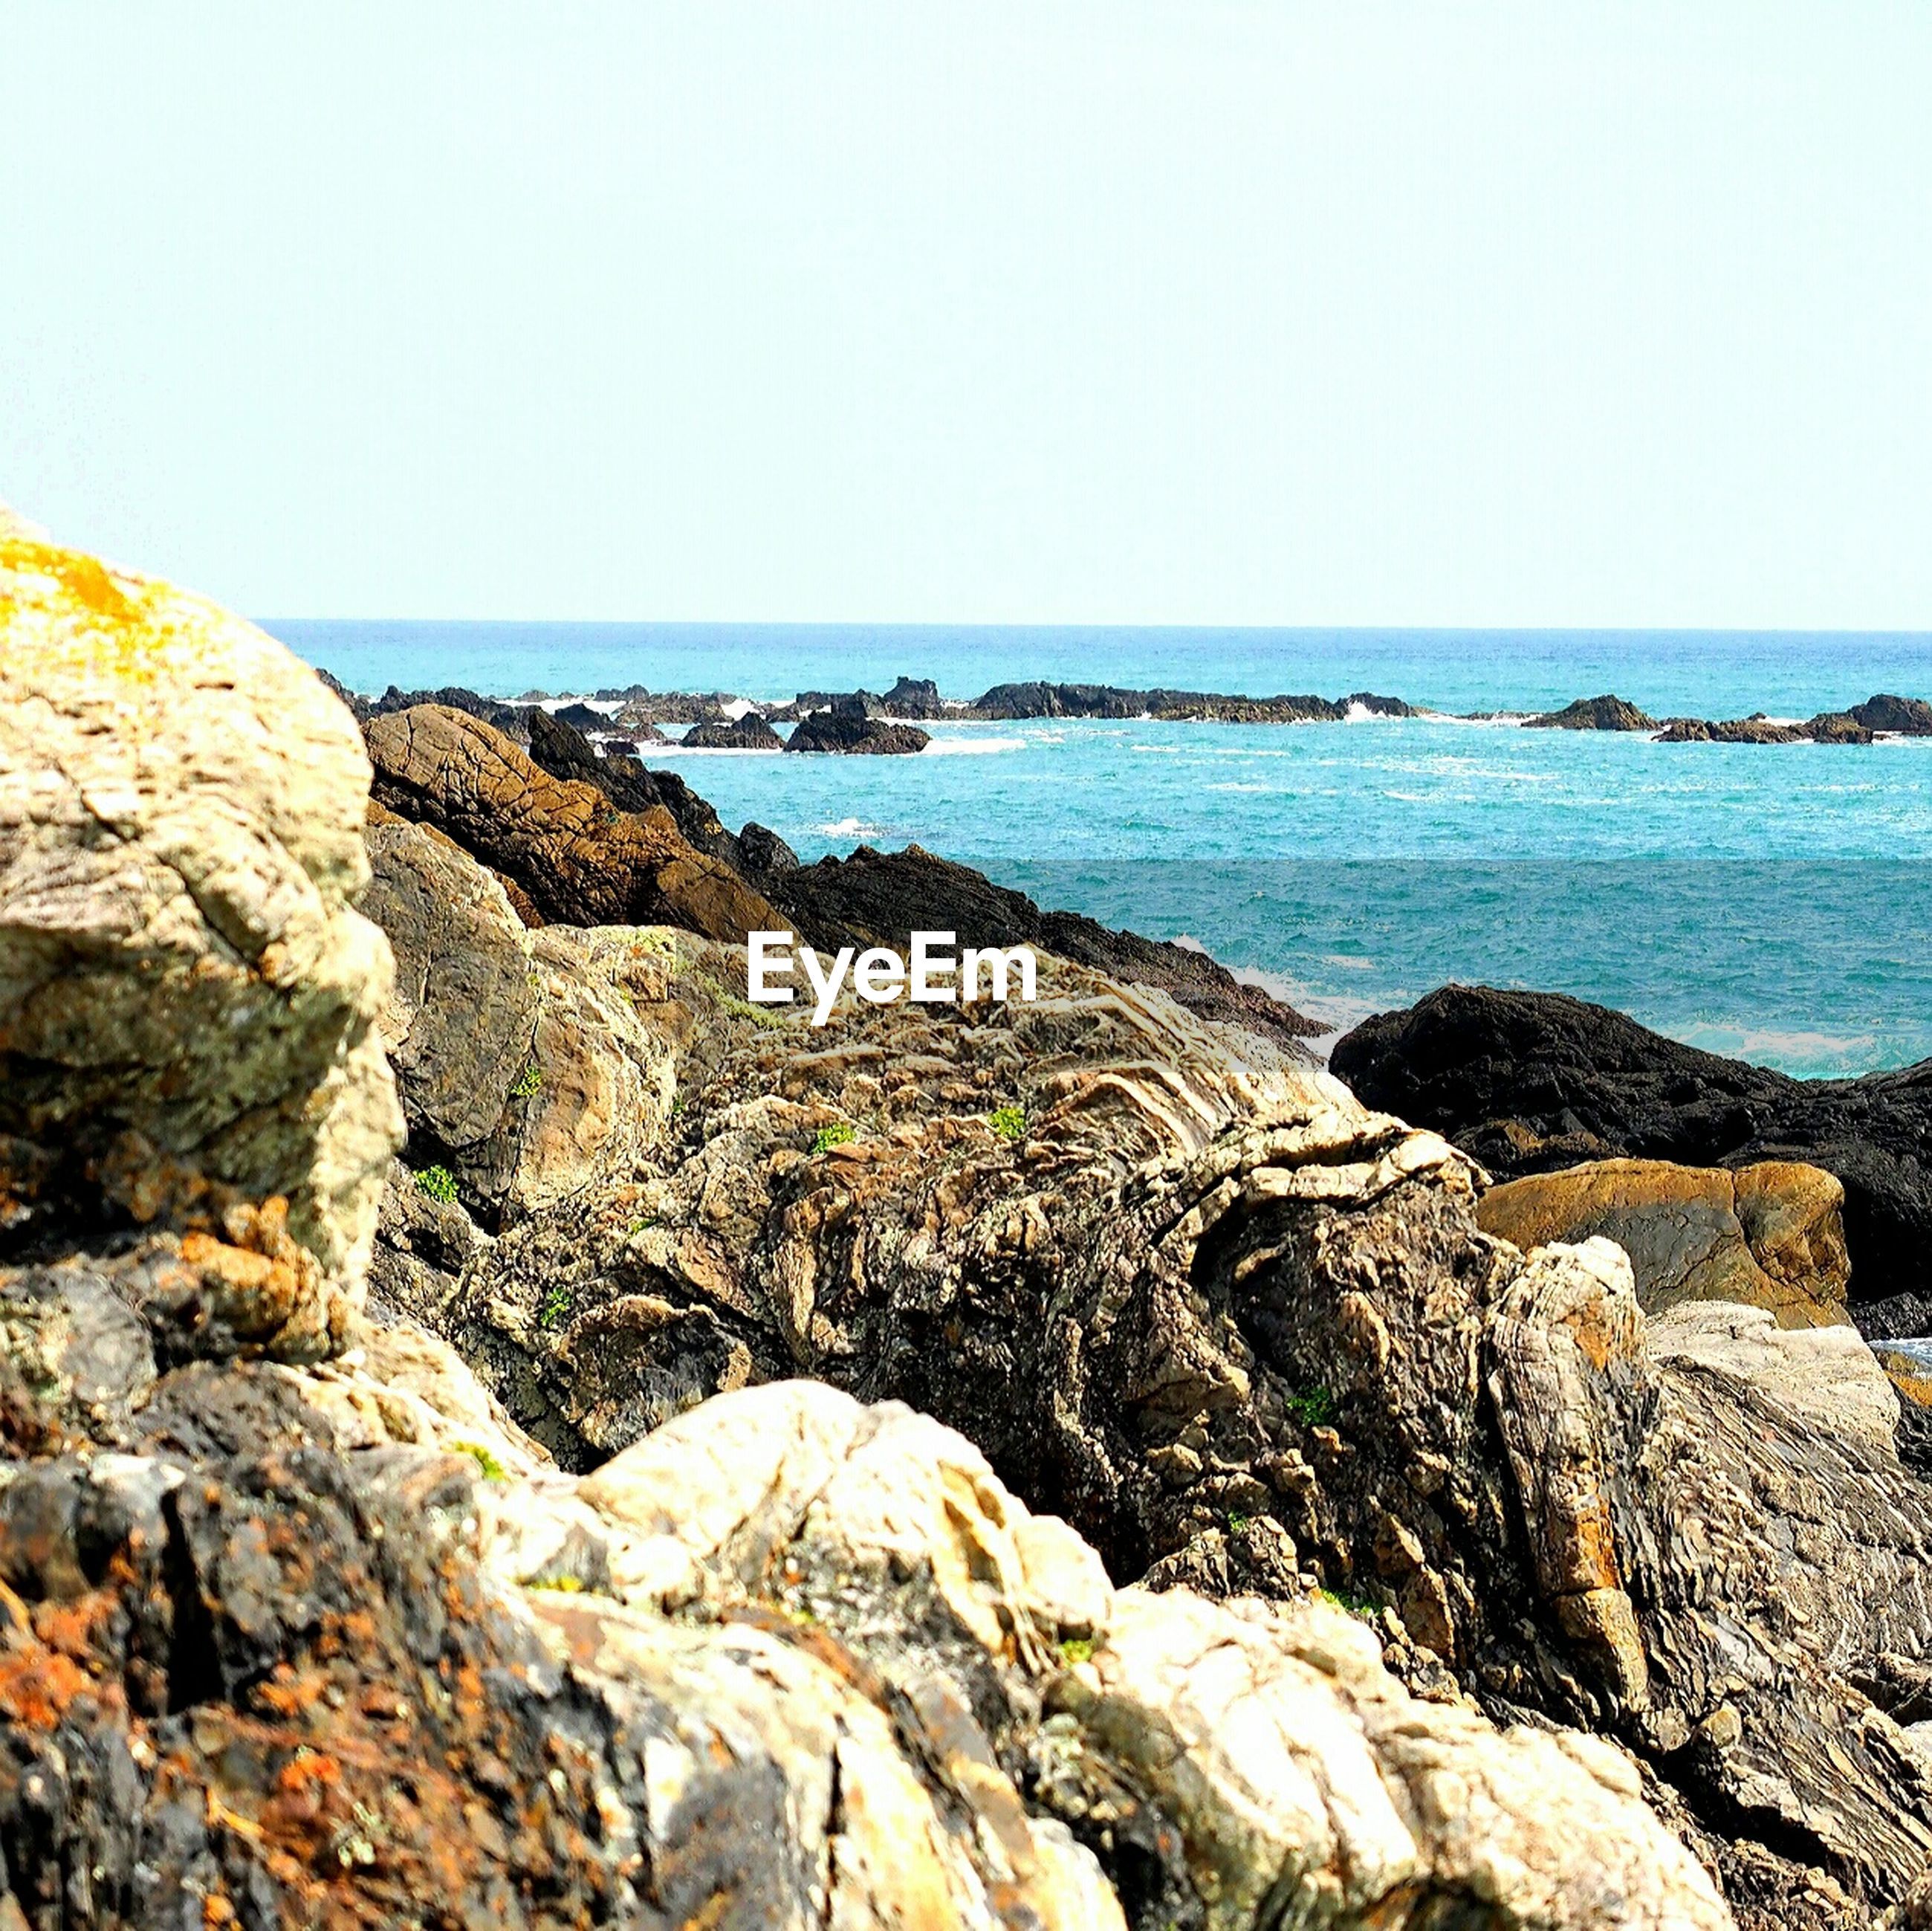 sea, horizon over water, water, clear sky, scenics, beauty in nature, rock - object, tranquil scene, tranquility, rock formation, nature, copy space, rock, beach, shore, idyllic, cliff, blue, outdoors, rocky